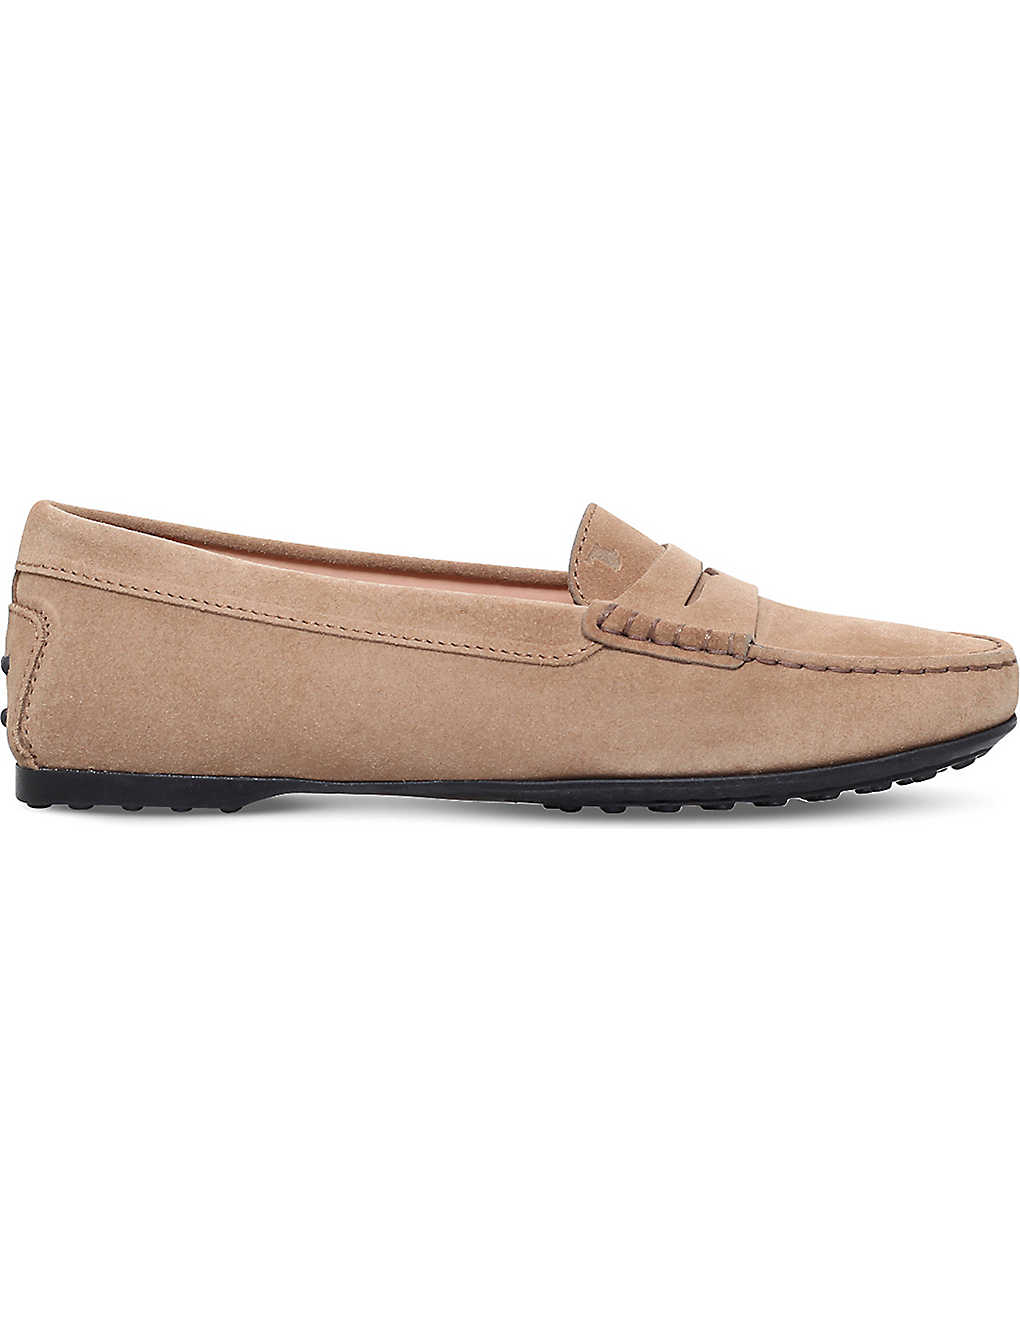 89be789f7 TODS - City Gommino suede loafers | Selfridges.com